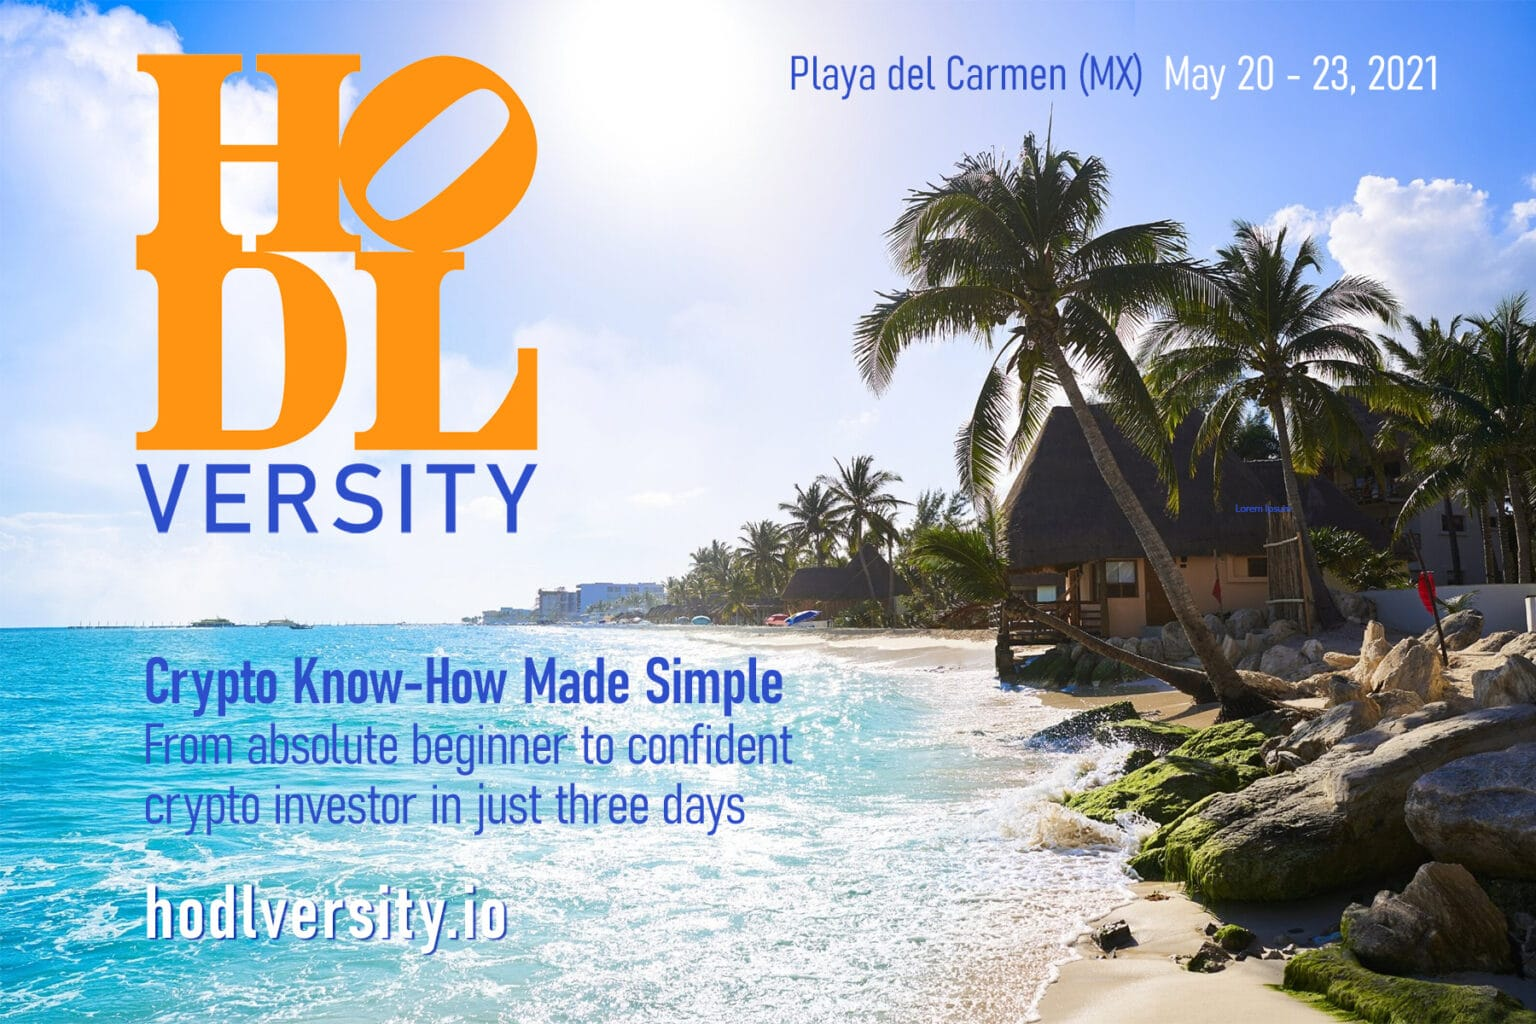 HODLversity in Playa del Carmen, the New Crypto Hub in Mexico